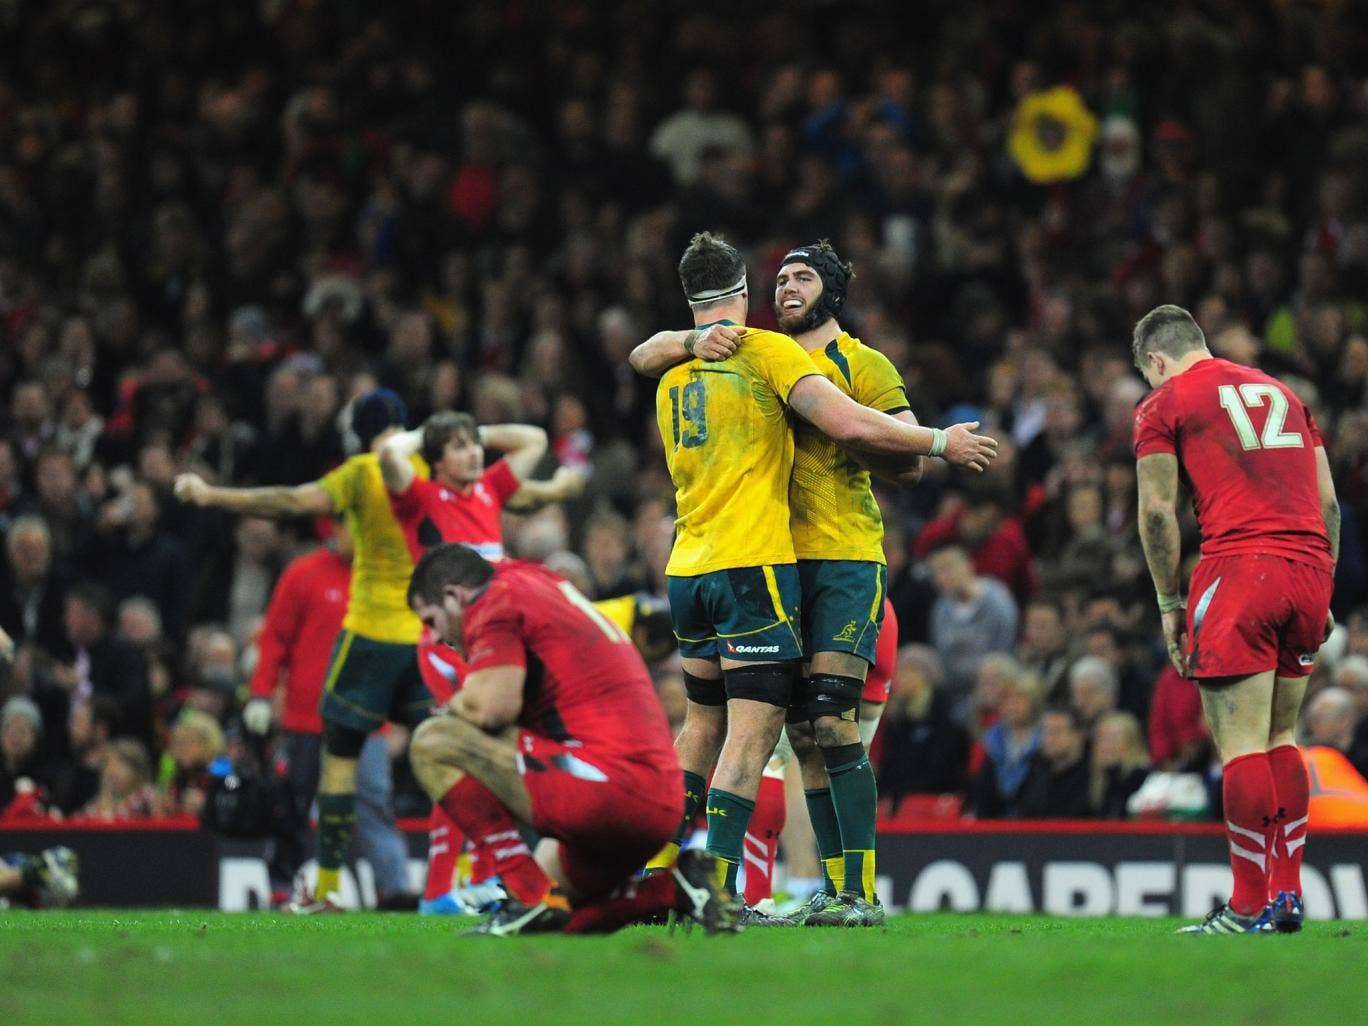 A disconsolate Wales team can't bare to look as Australia celebrate their win at the Millennium Stadium